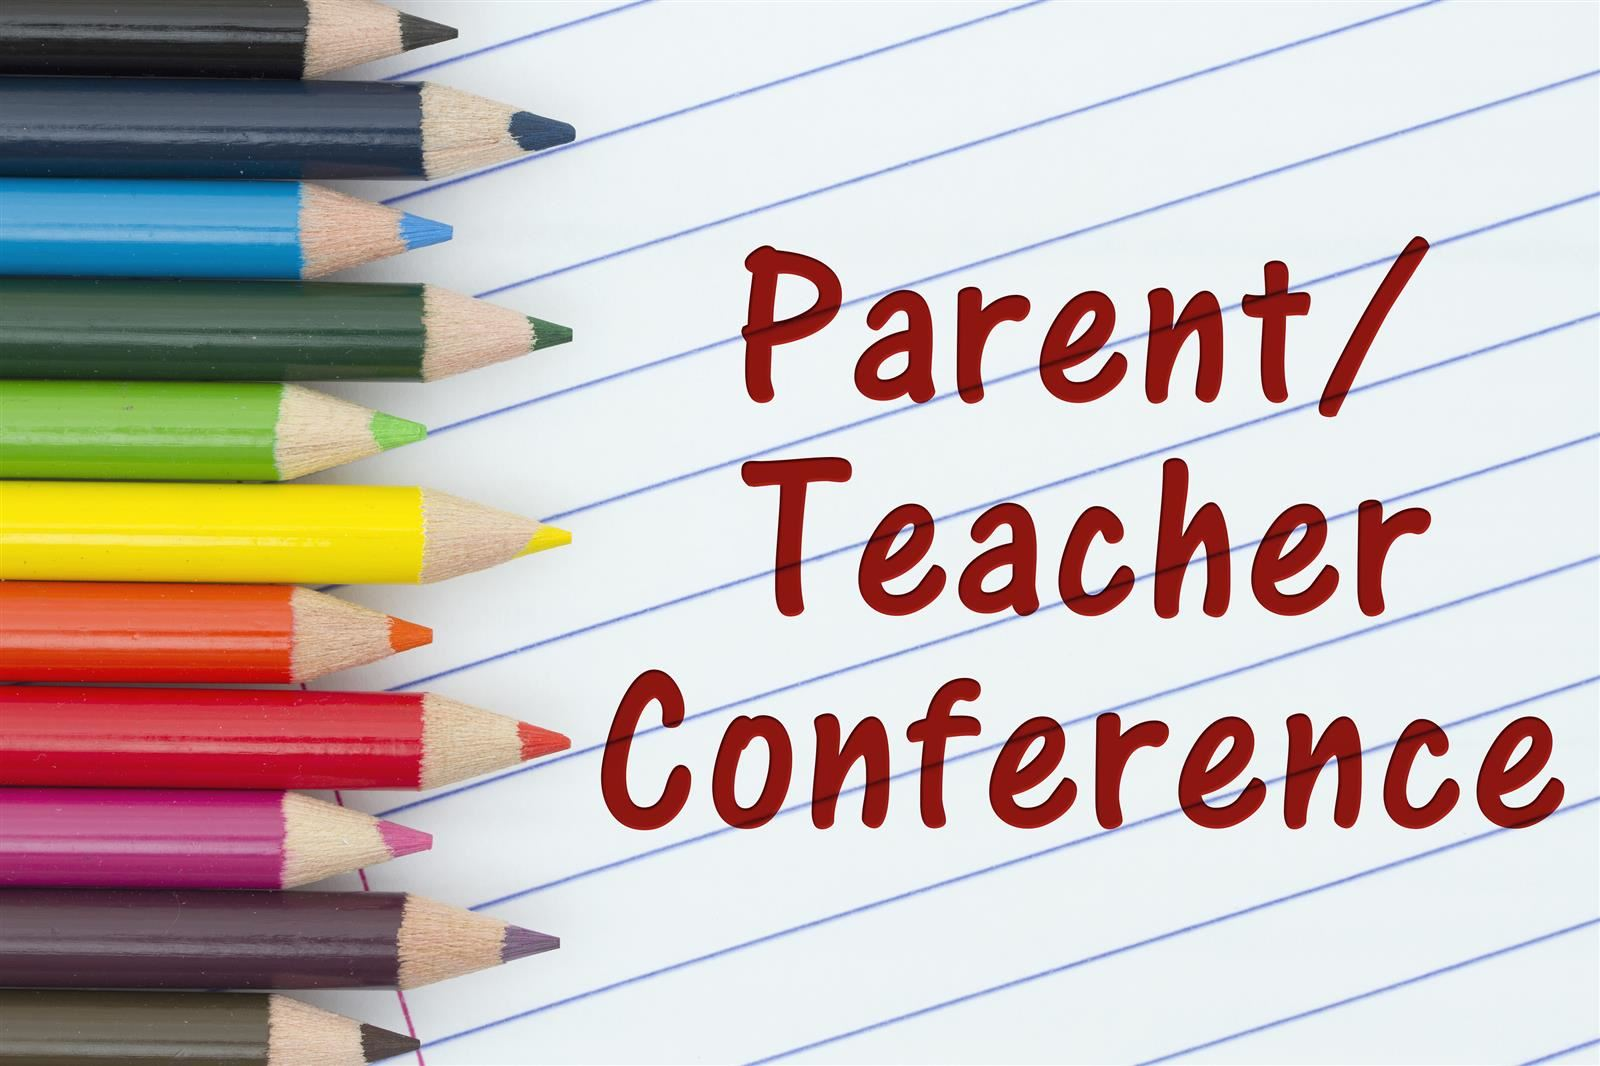 Parent Teacher Conferences 2/4 and 2/11